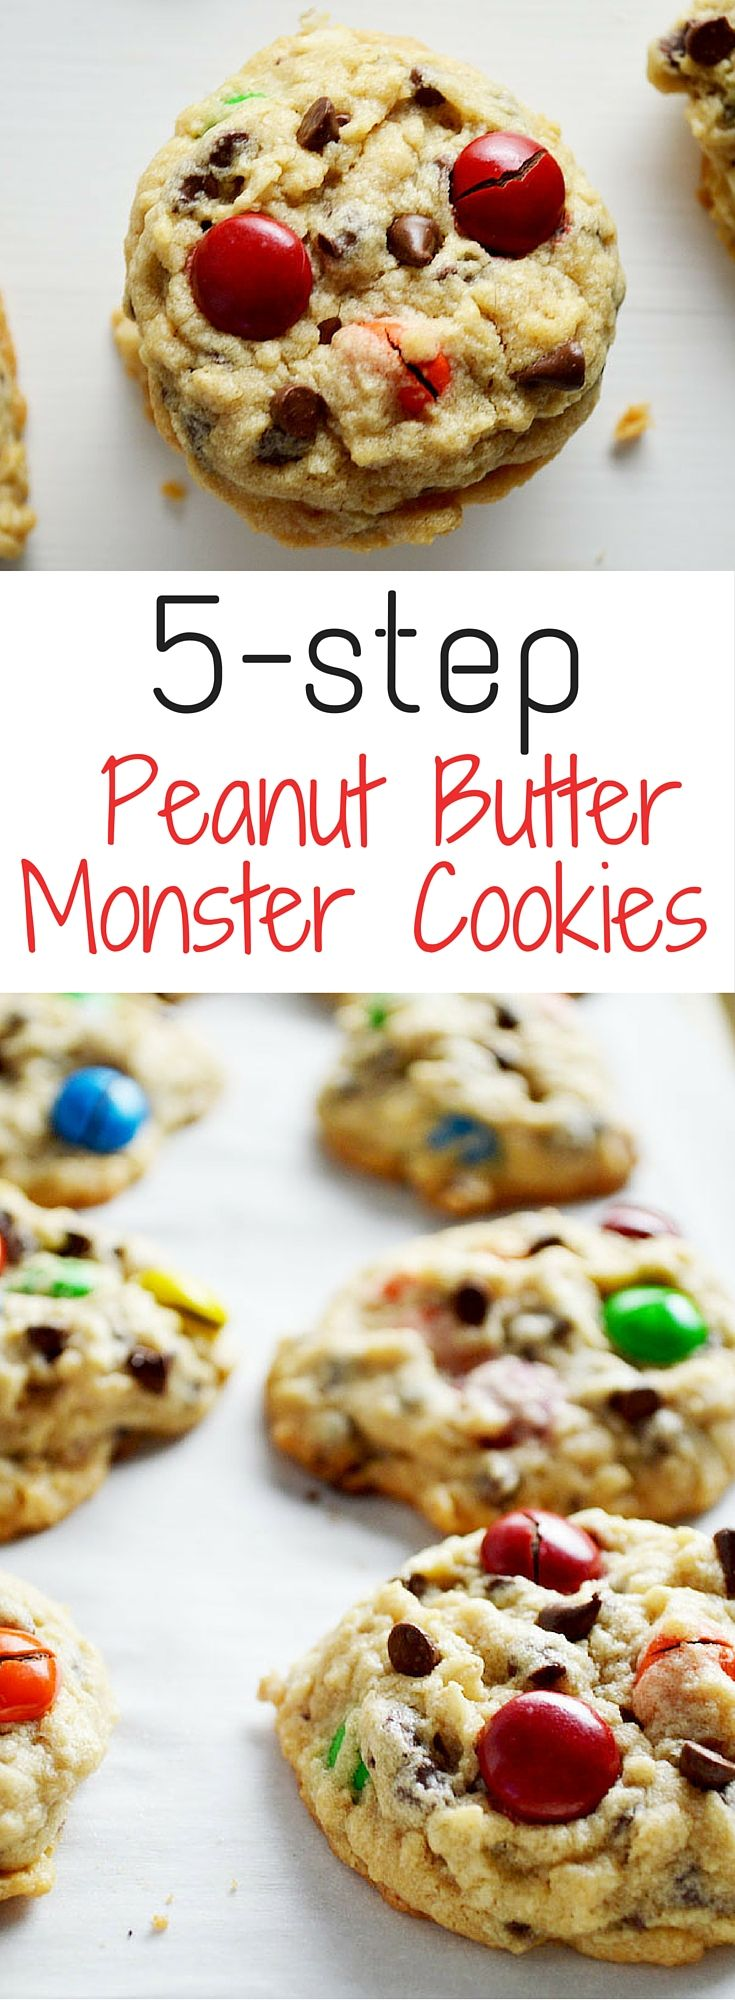 I am totally obsessed with these cookies! They have everything good that could possibly be in cookies.